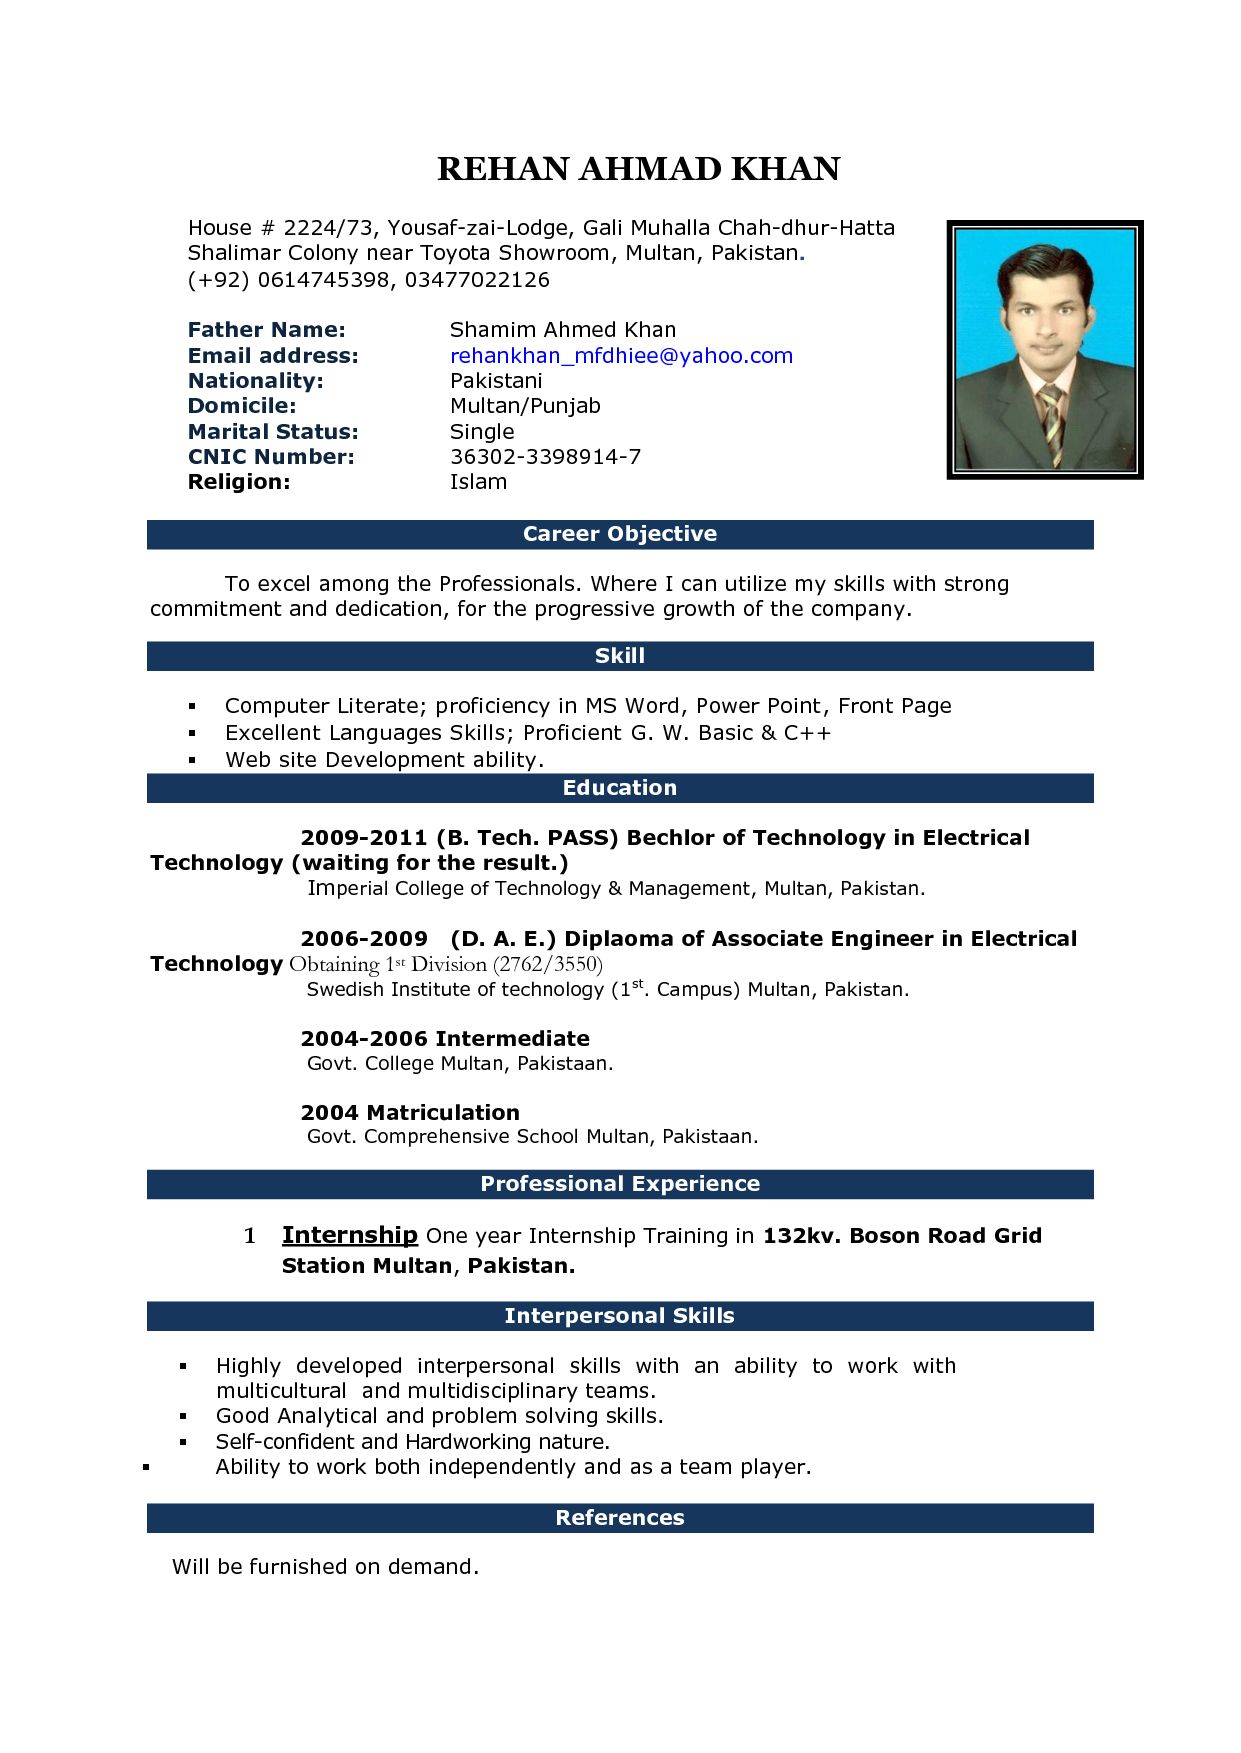 free cv format in ms word fieldstationco microsoft office resume templates sample for boy Resume Sample Resume For Office Boy